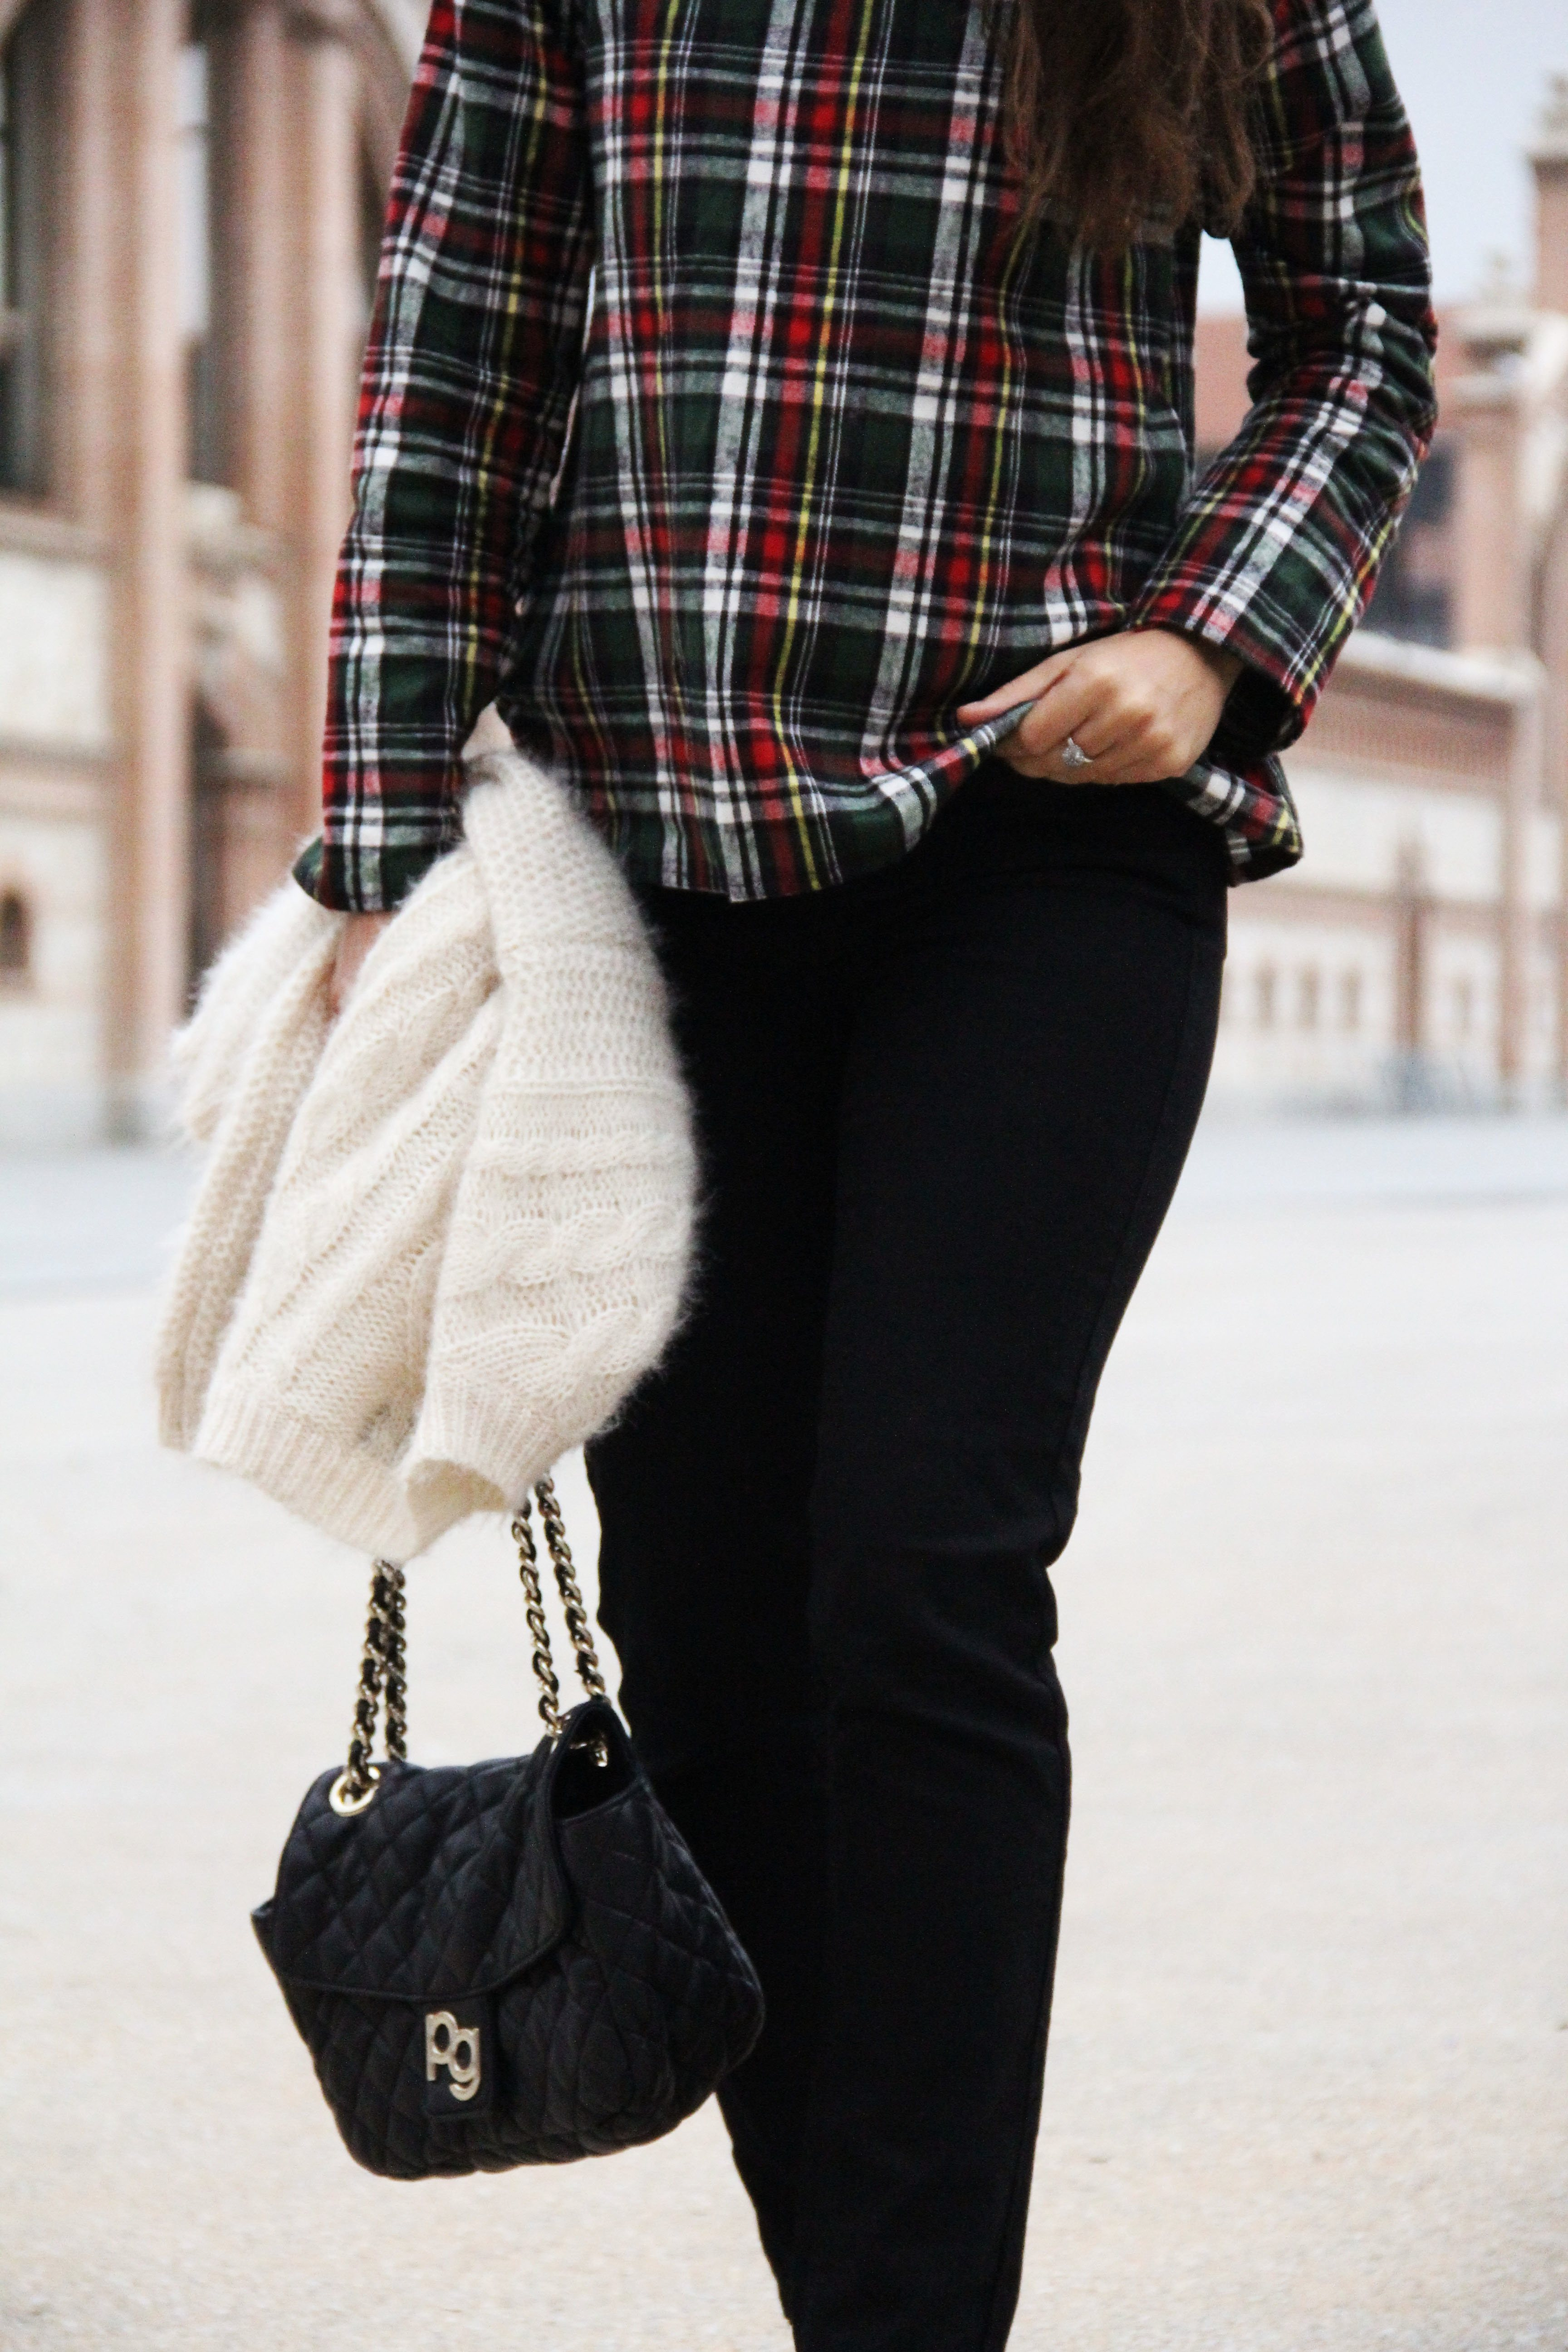 0_Less_is_more-black_jeans-compañía_fantástica-camisa_cuadros-salones_rojos-red_heels-outfit-street_style-bolso_purificacion_garcia-skinny_jeans